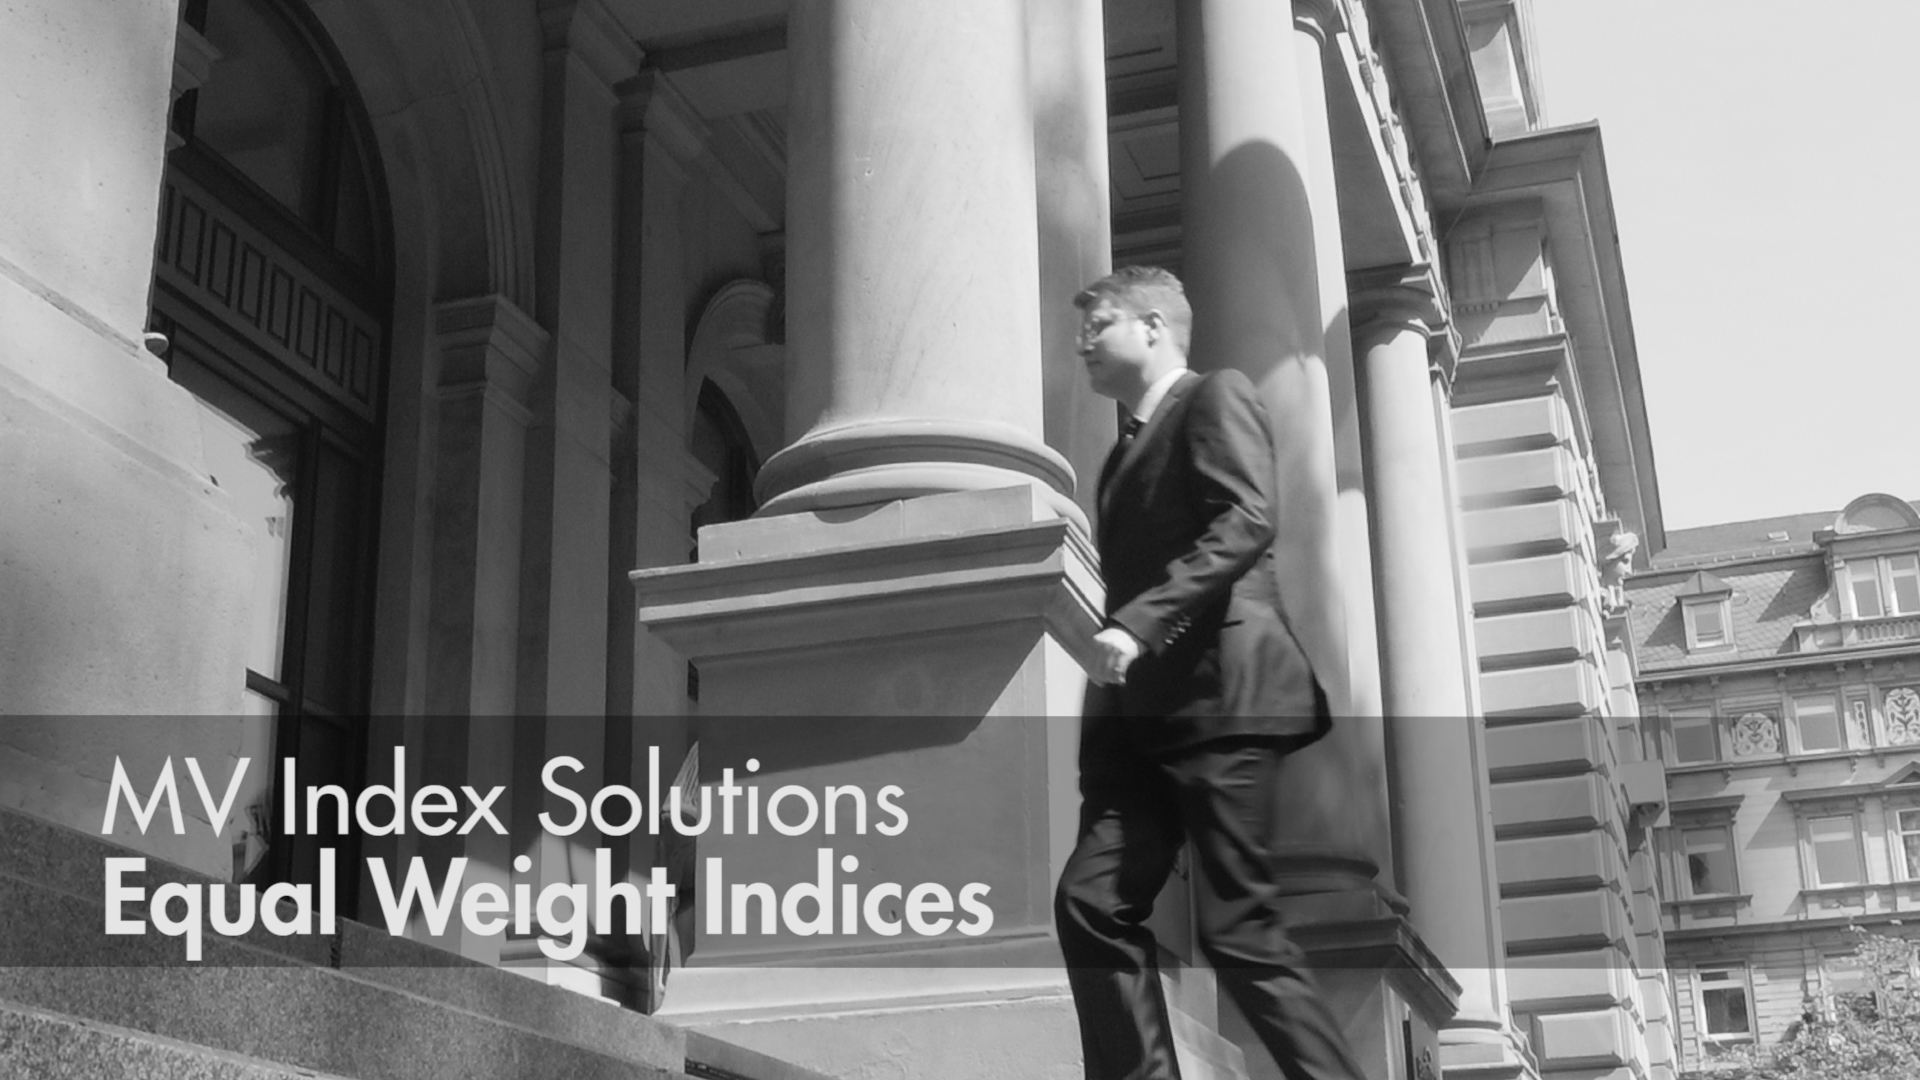 MV Index Solutions – Equal Weight Indices